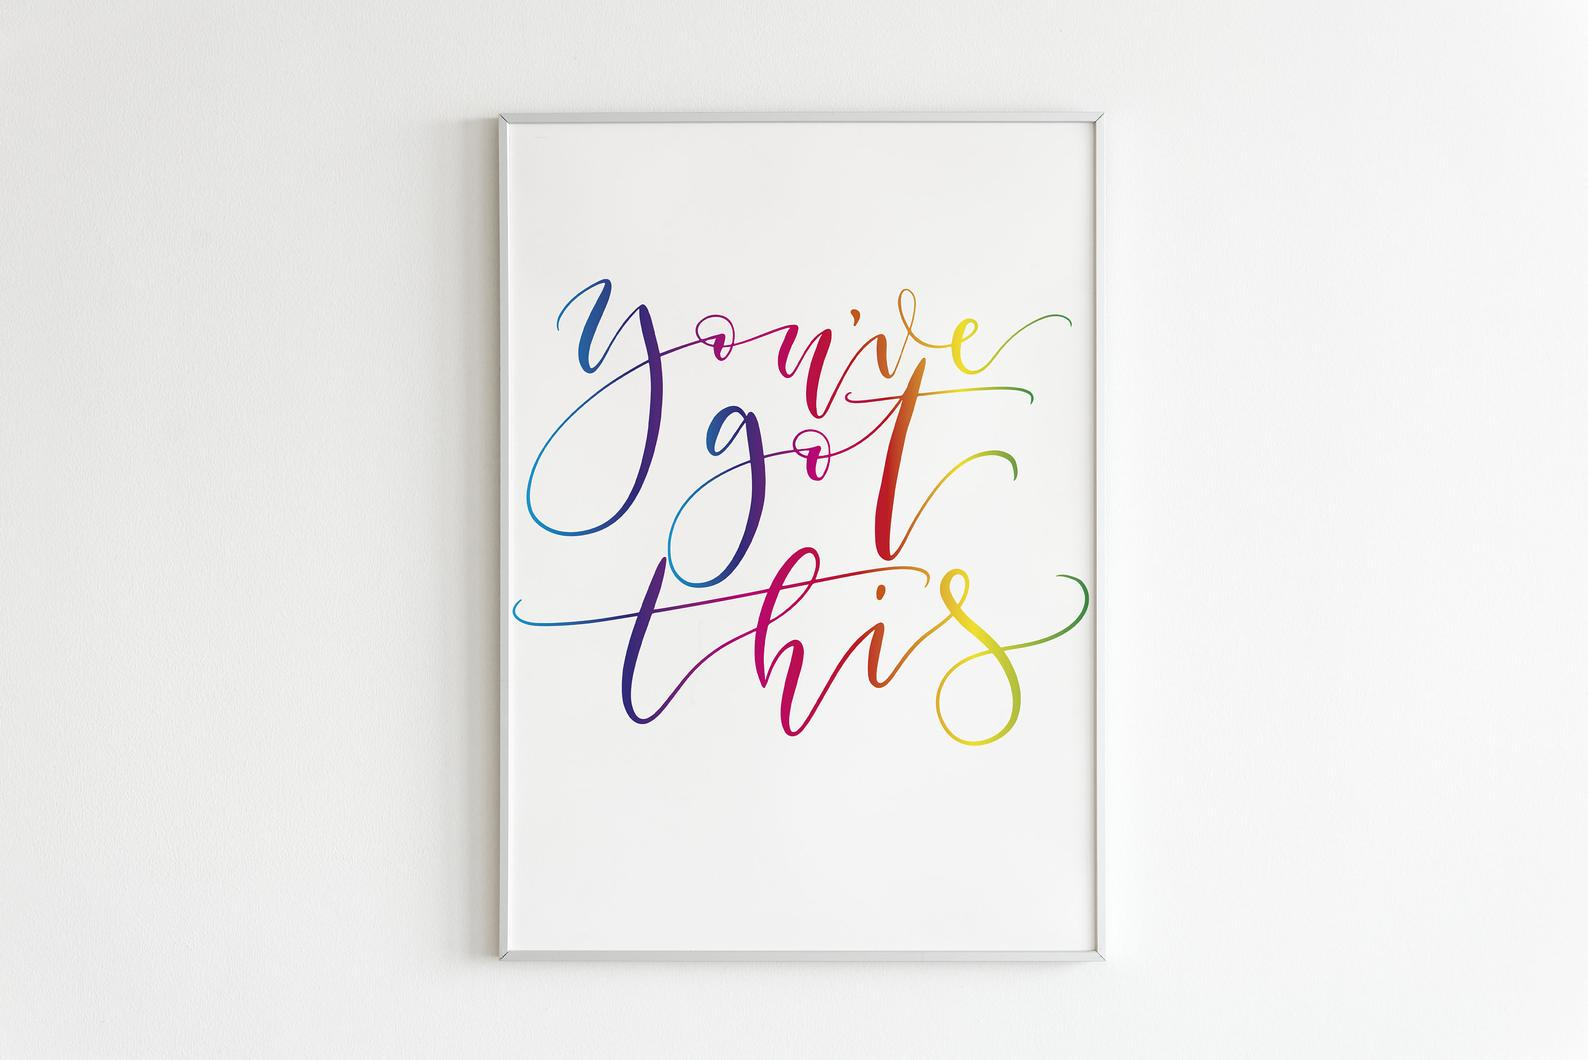 'You've got this' colourful calligraphy print